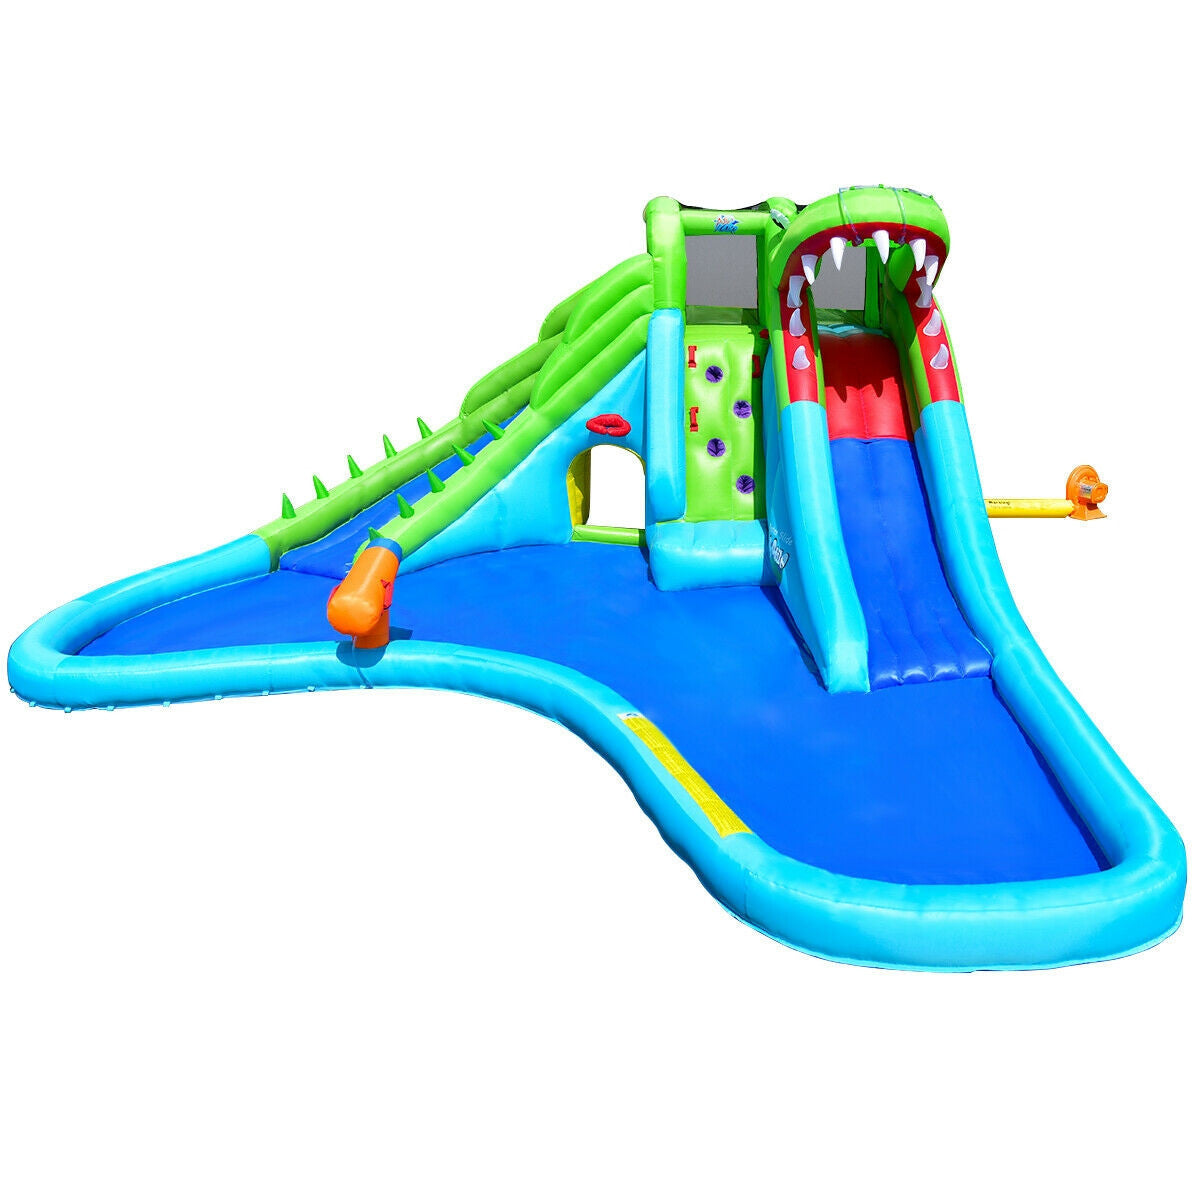 Inflatable Slide with Pool for Kids Bounce House blower included